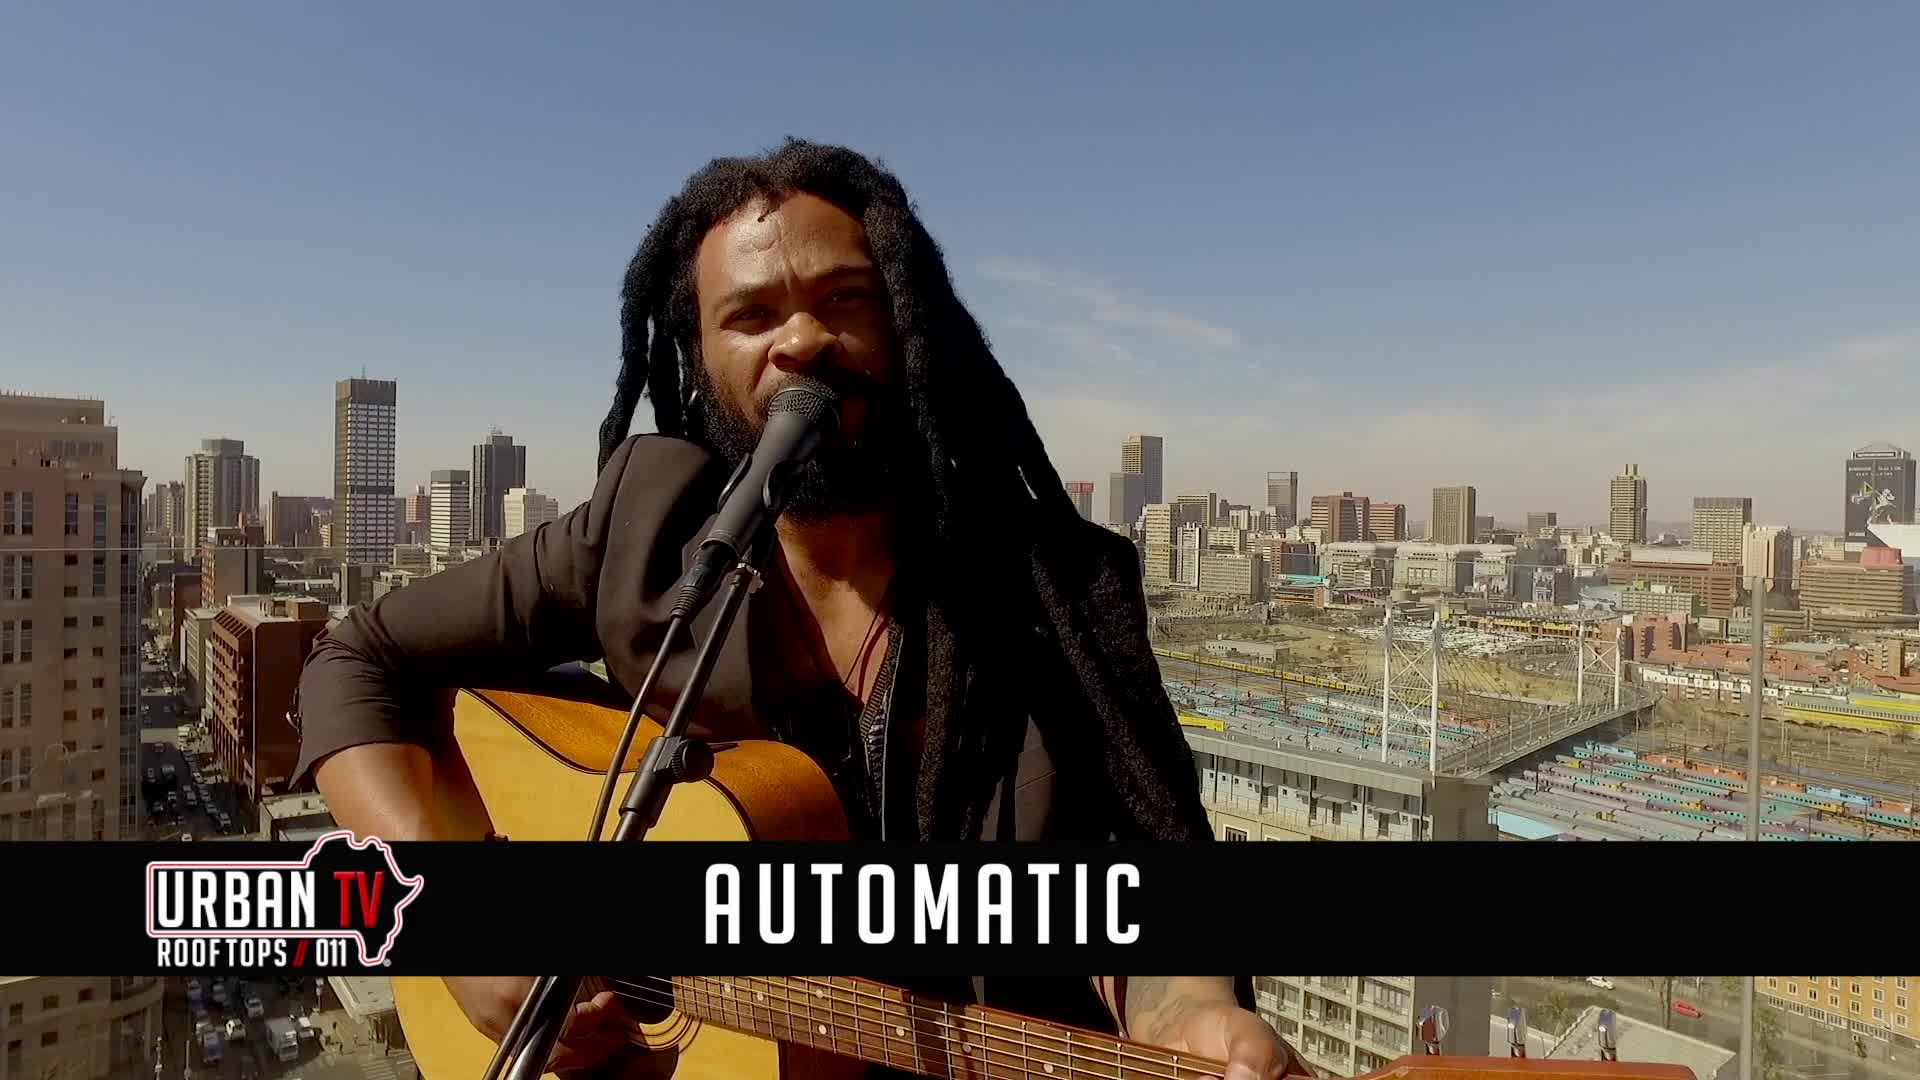 Urban Rooftops 011 - Automatic